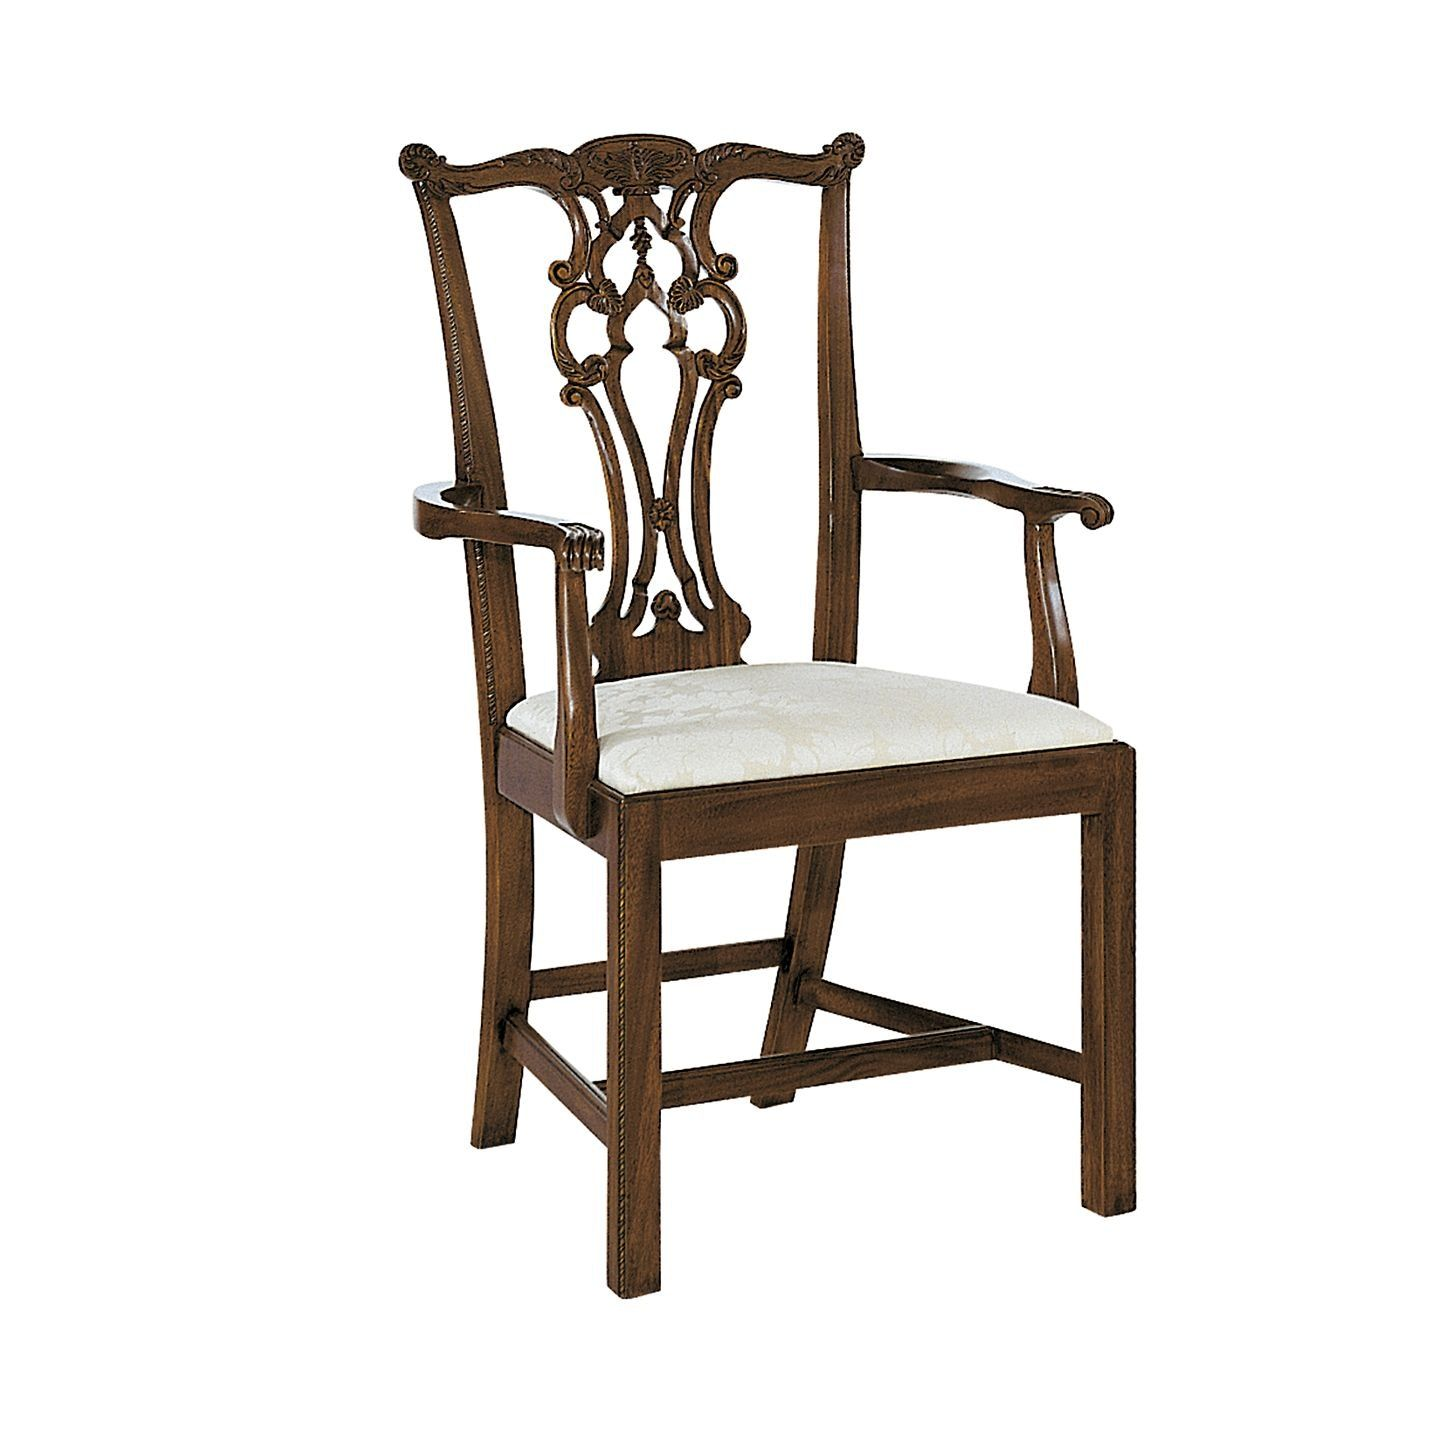 Maitland Smith Dining Chairs Oak Round Table 6 Rhode Island Chippendale Arm Chair By Hickory Pearson